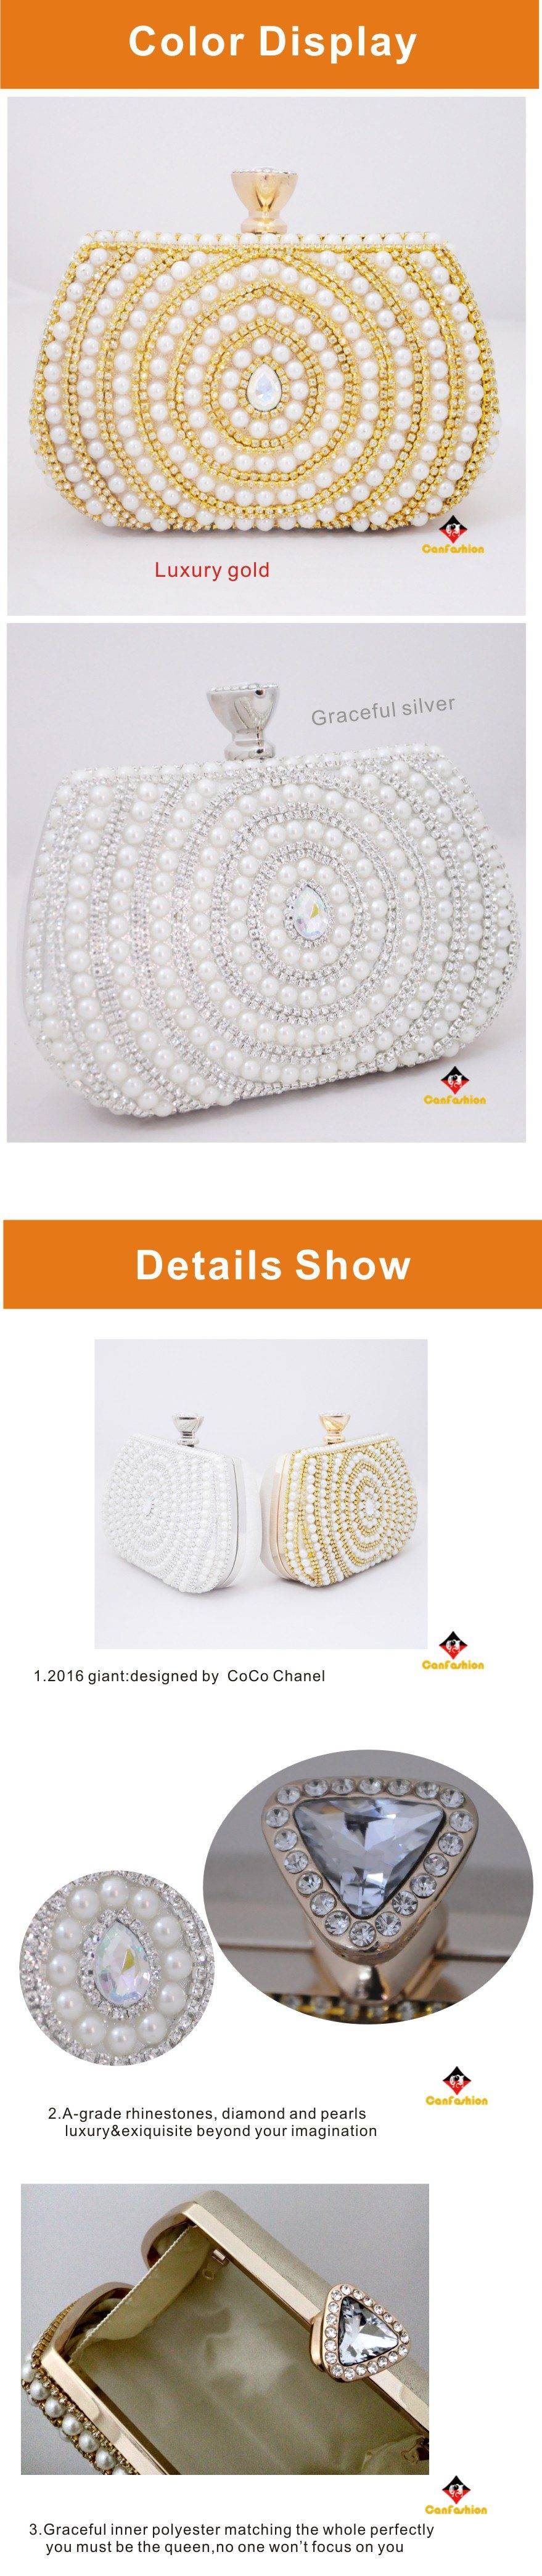 factory wholesale hard case pu evening clutch bag from china